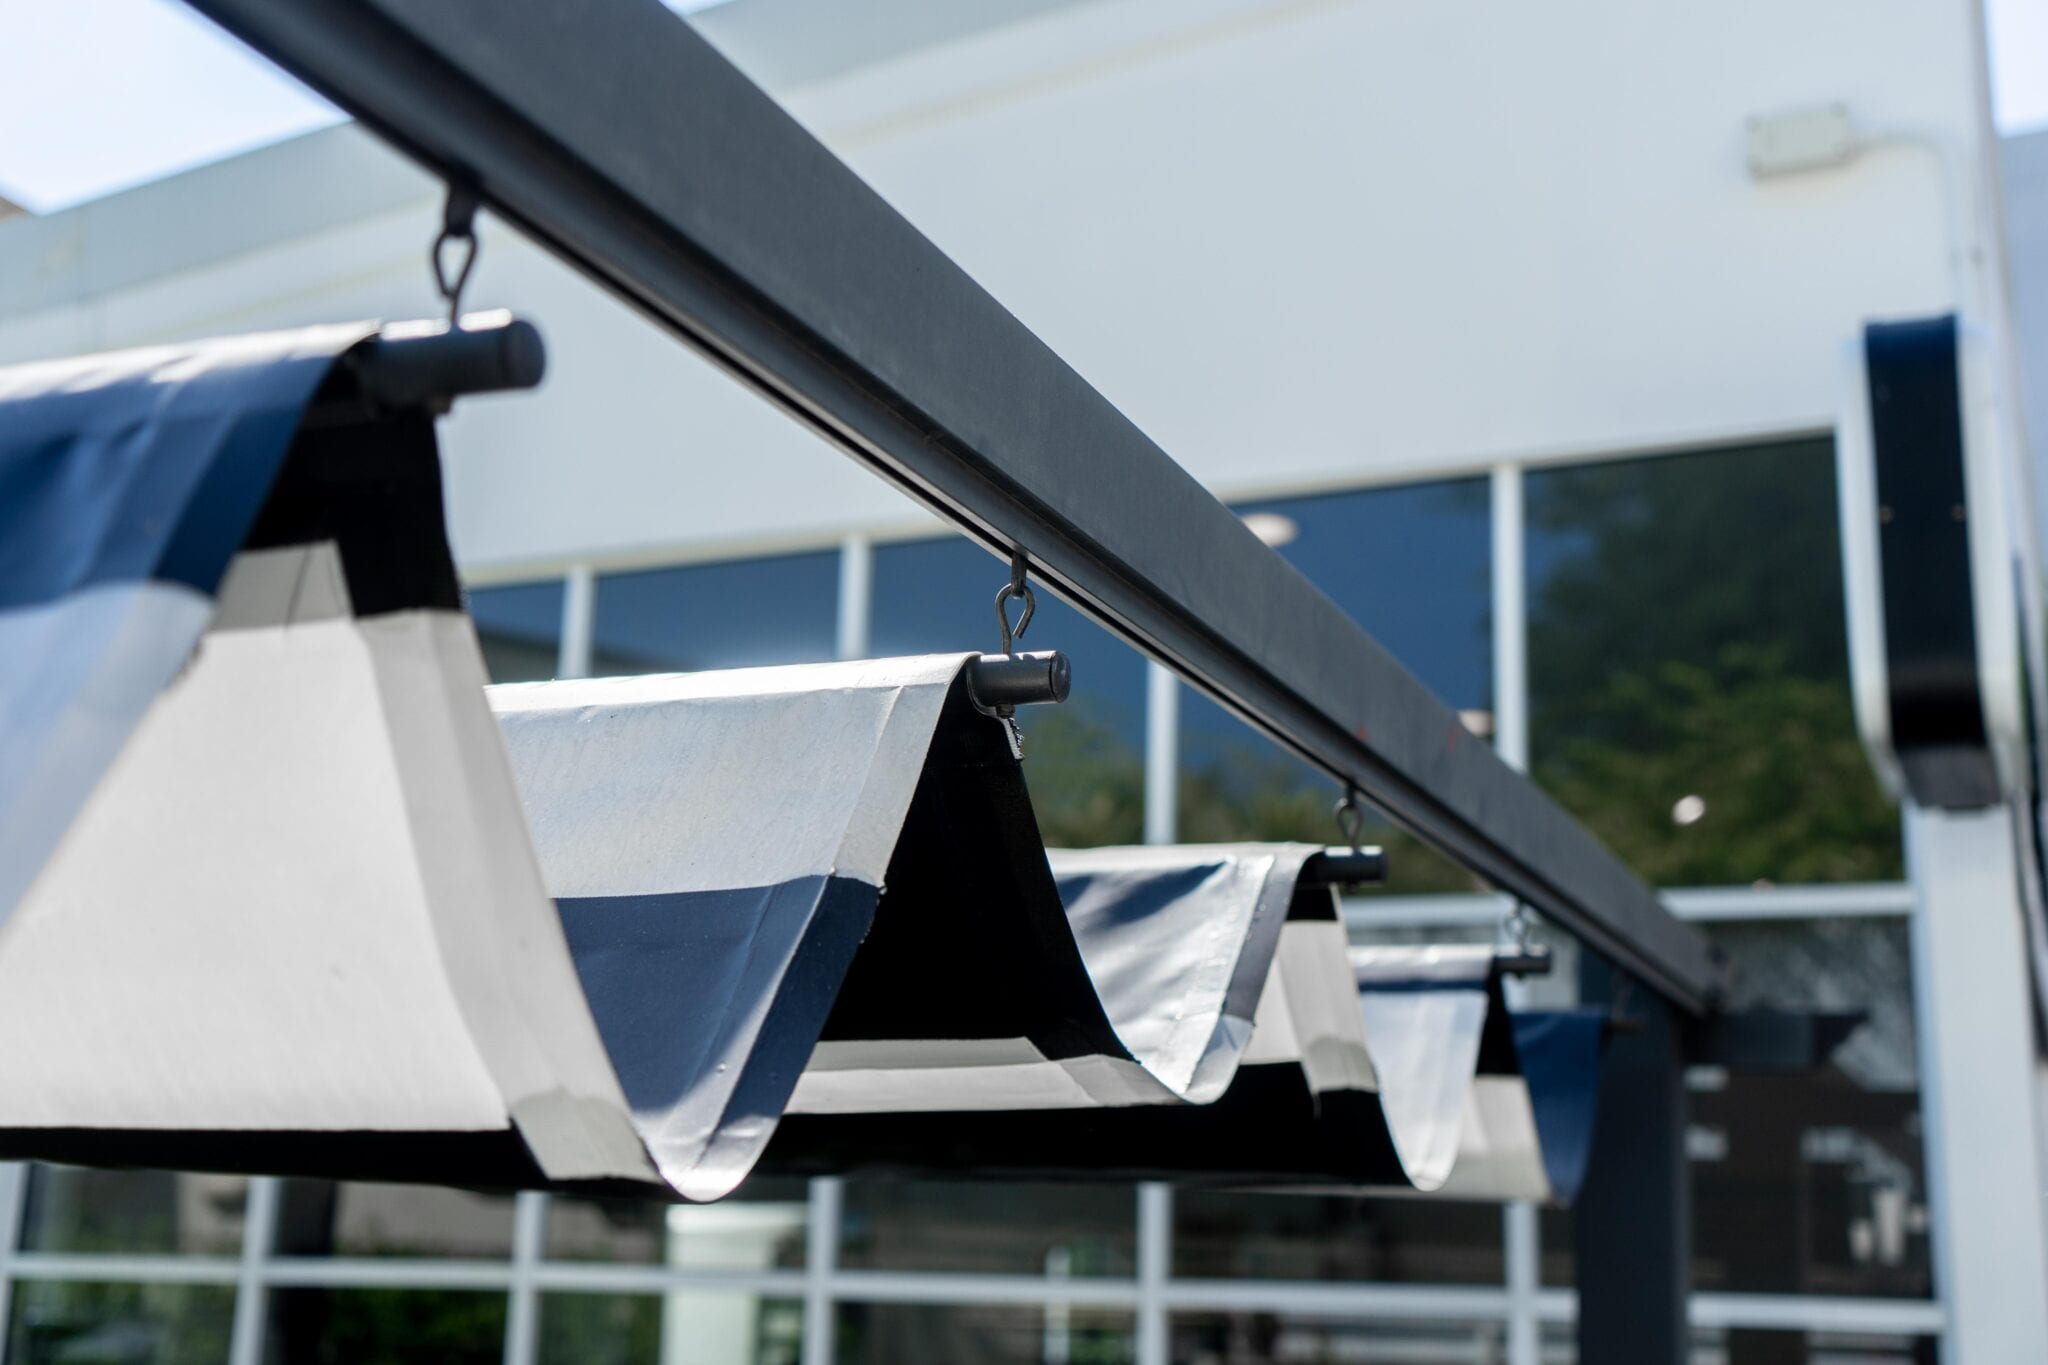 Retractable Awnings and Canopies Add Style and Protection to Your Windows